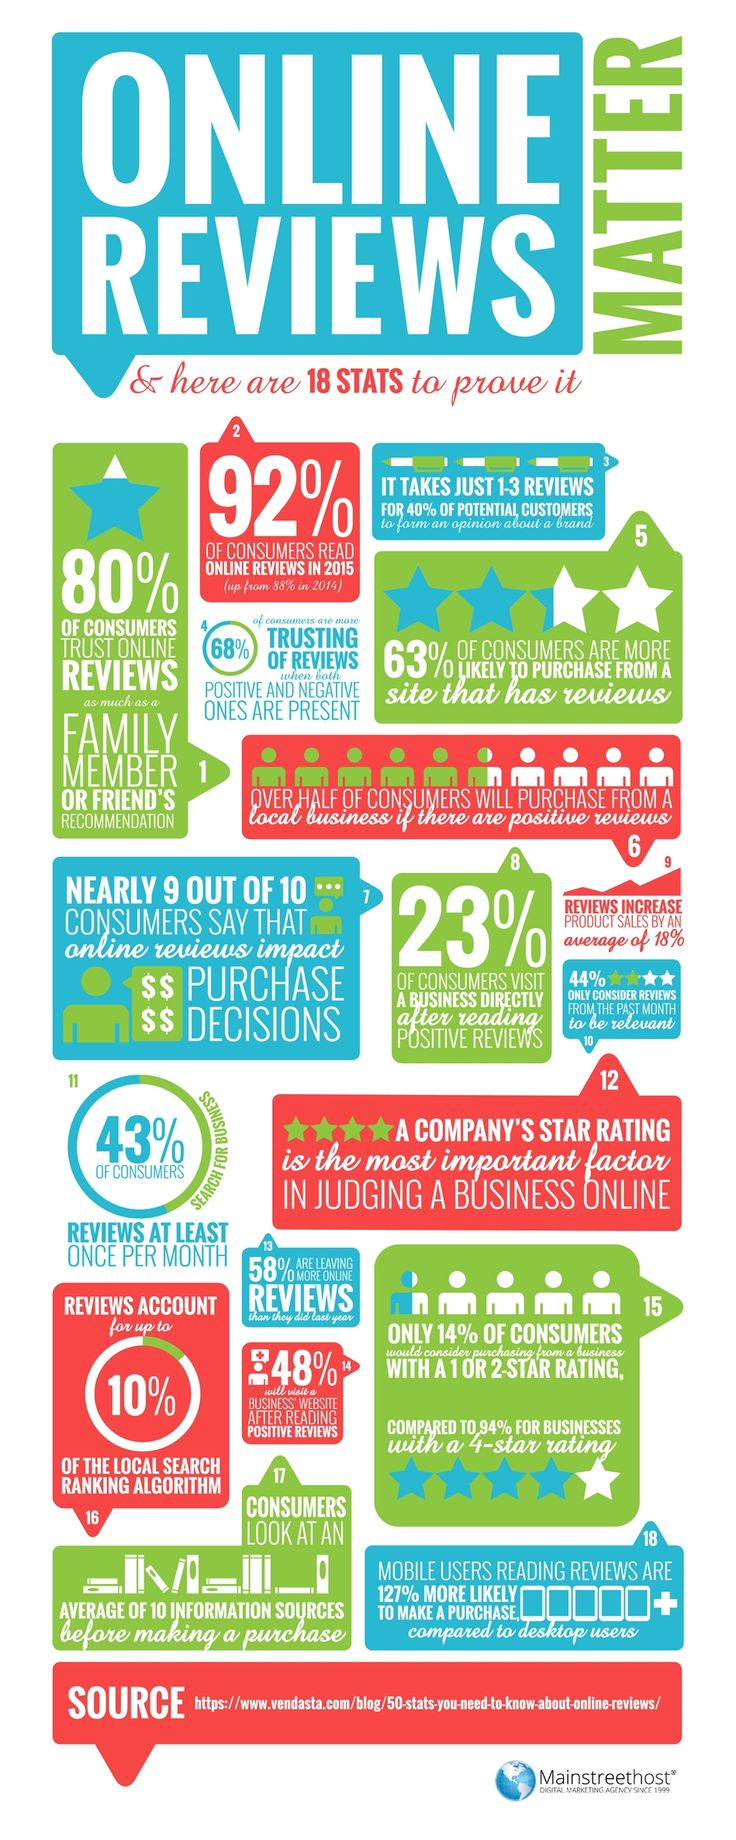 Online Reviews Matter – And Here Are 18 Stats To Prove It #Infographic #Business